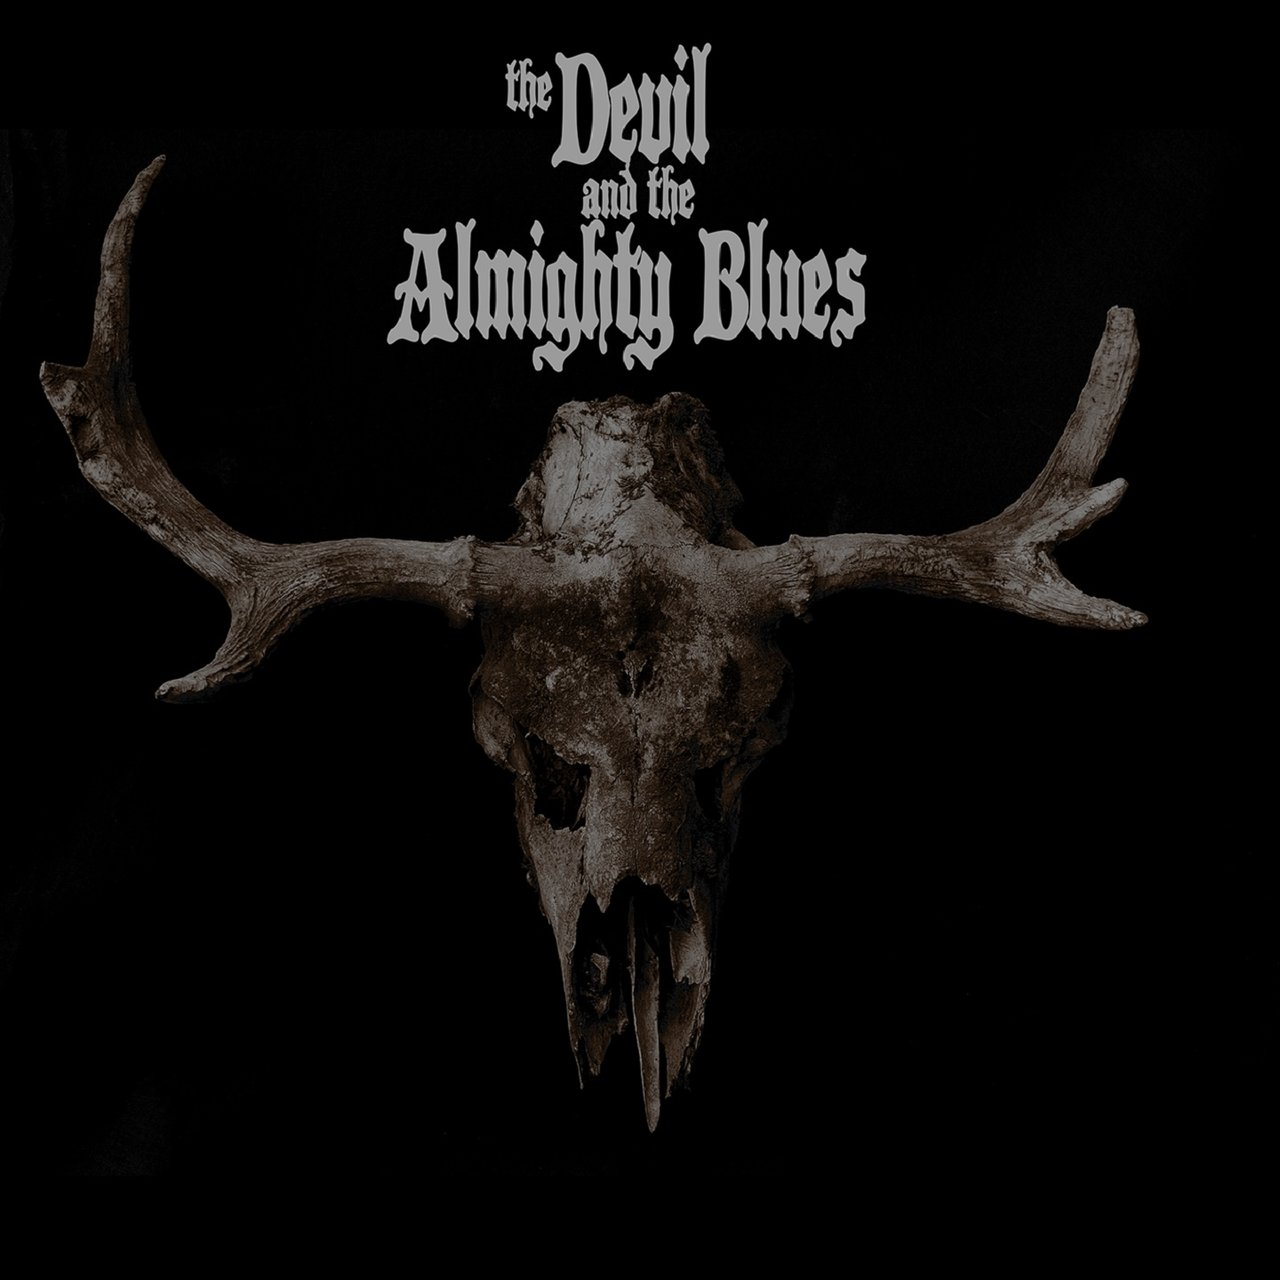 The Devil and the Almighty Blues